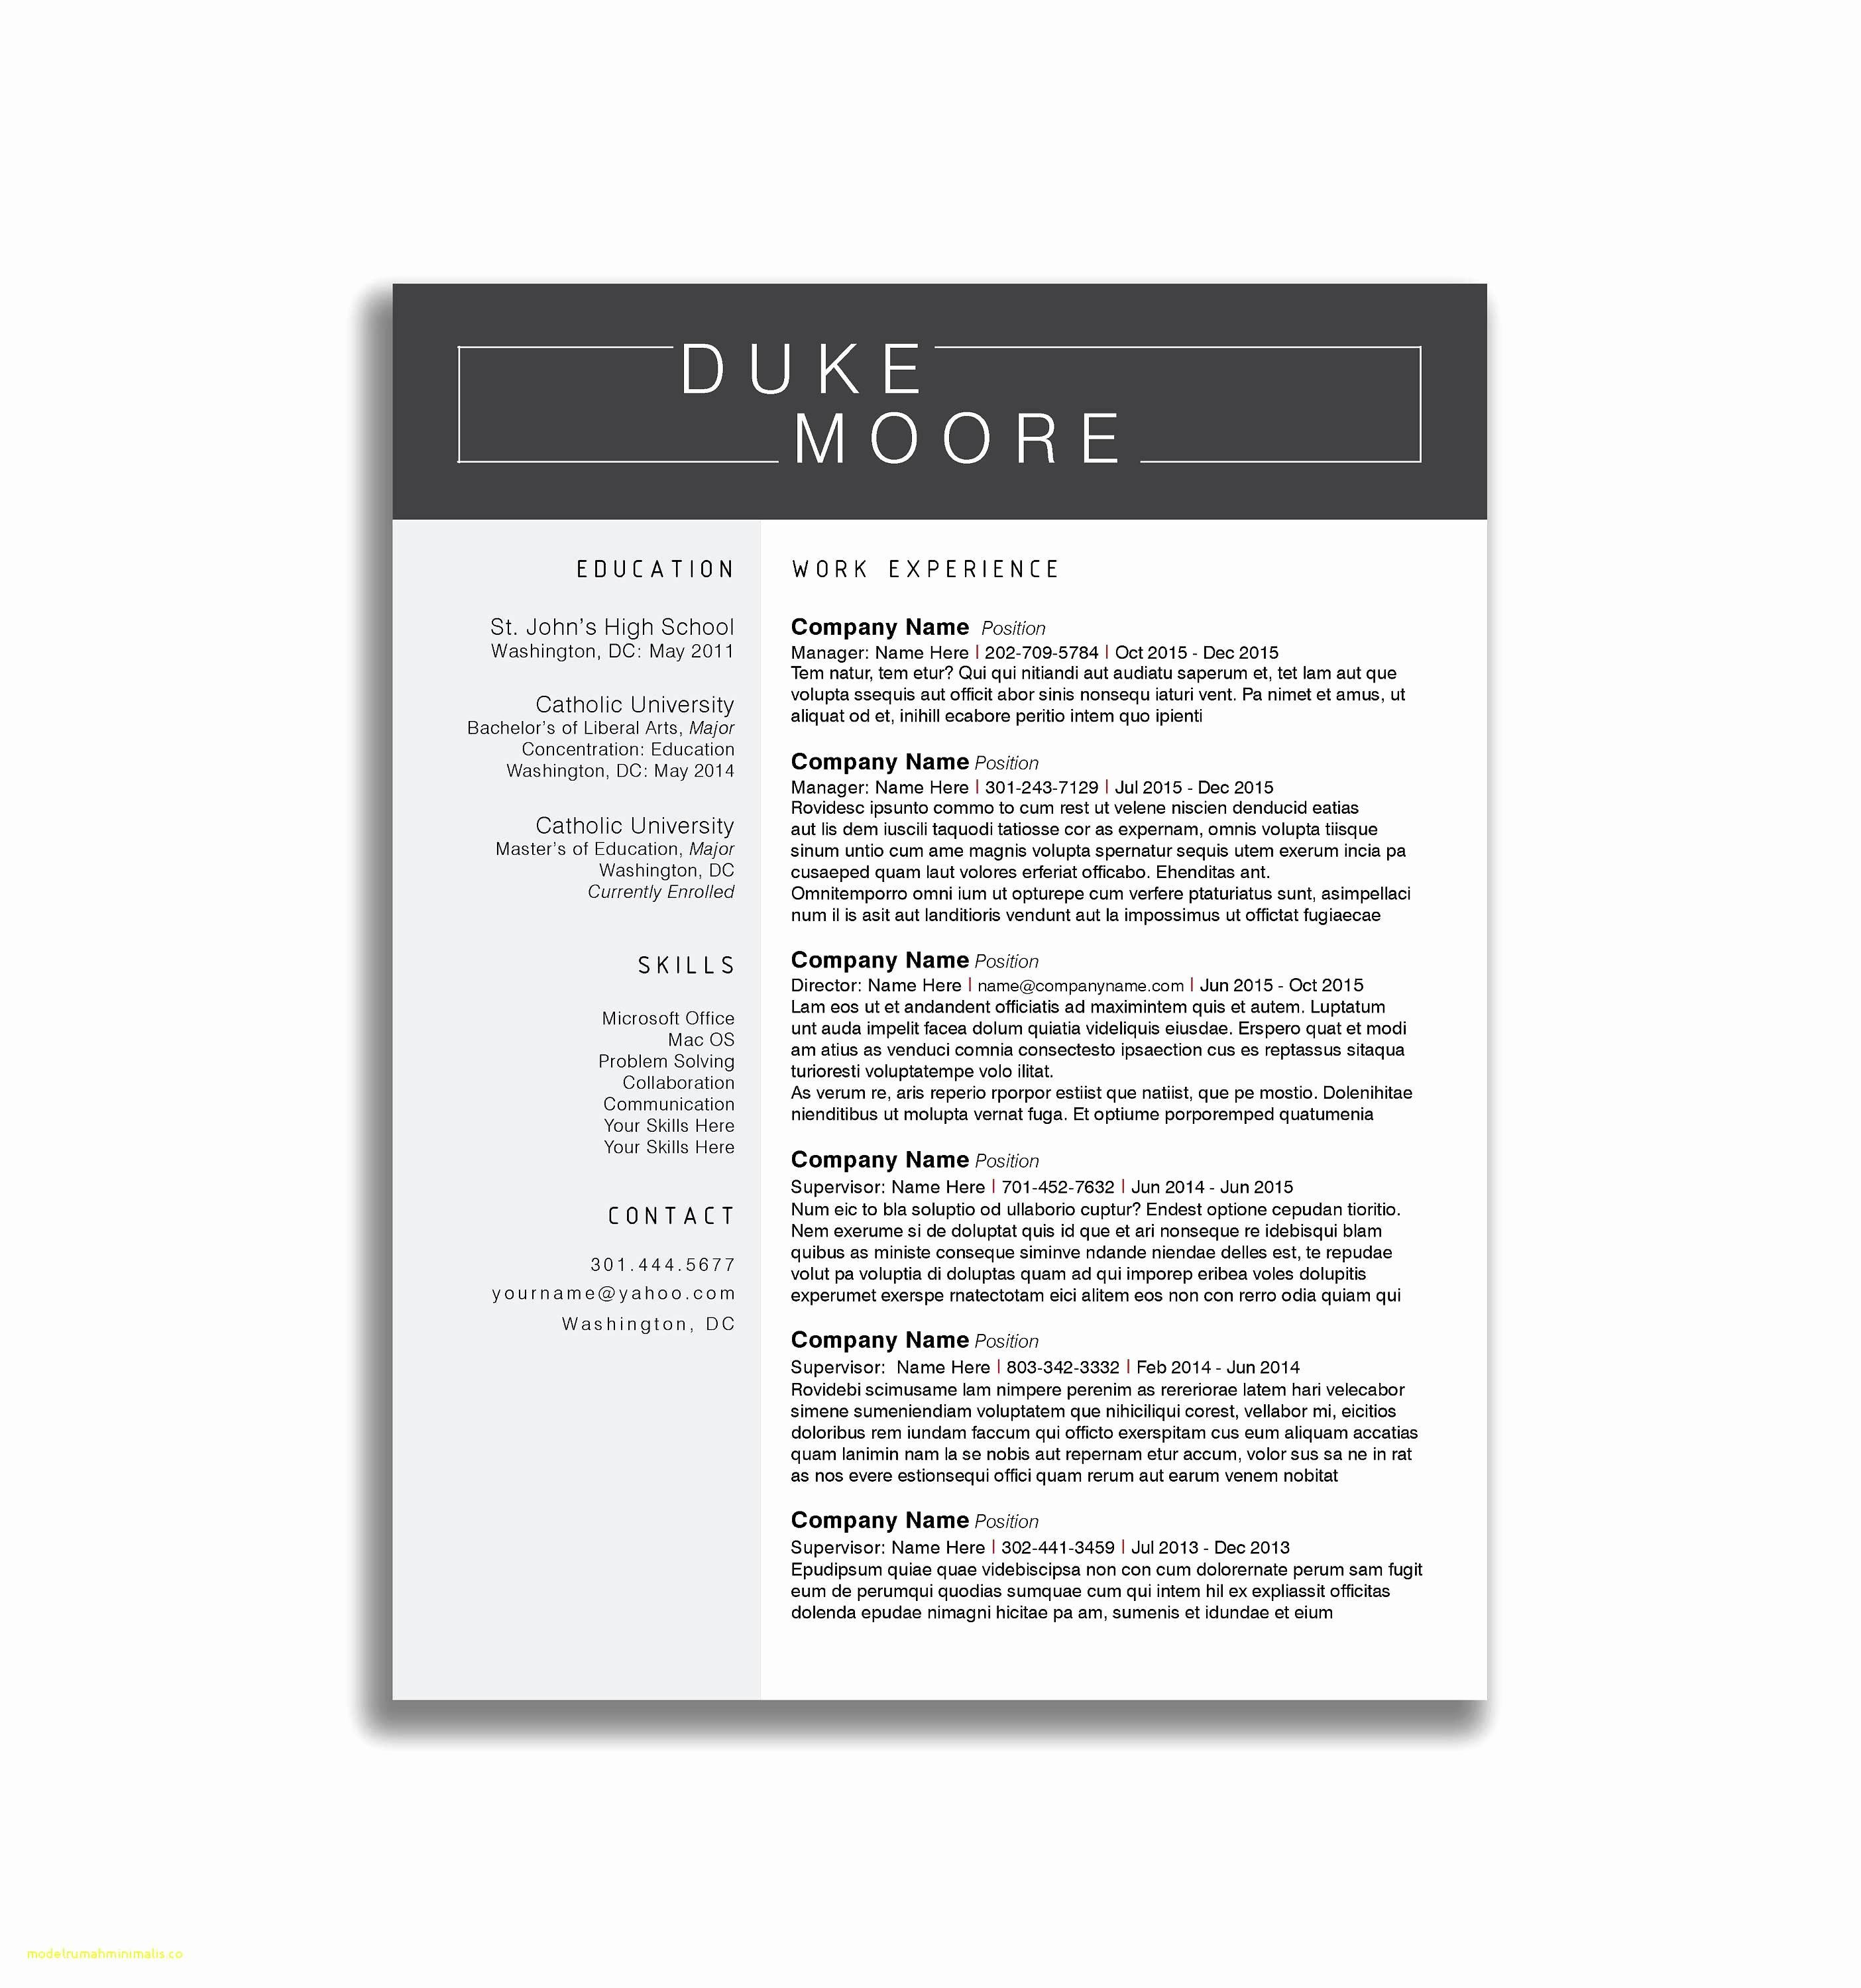 Soccer Coaching Resumes - Coaching Resume Samples Unique Resumes and Cover Letters Elegant